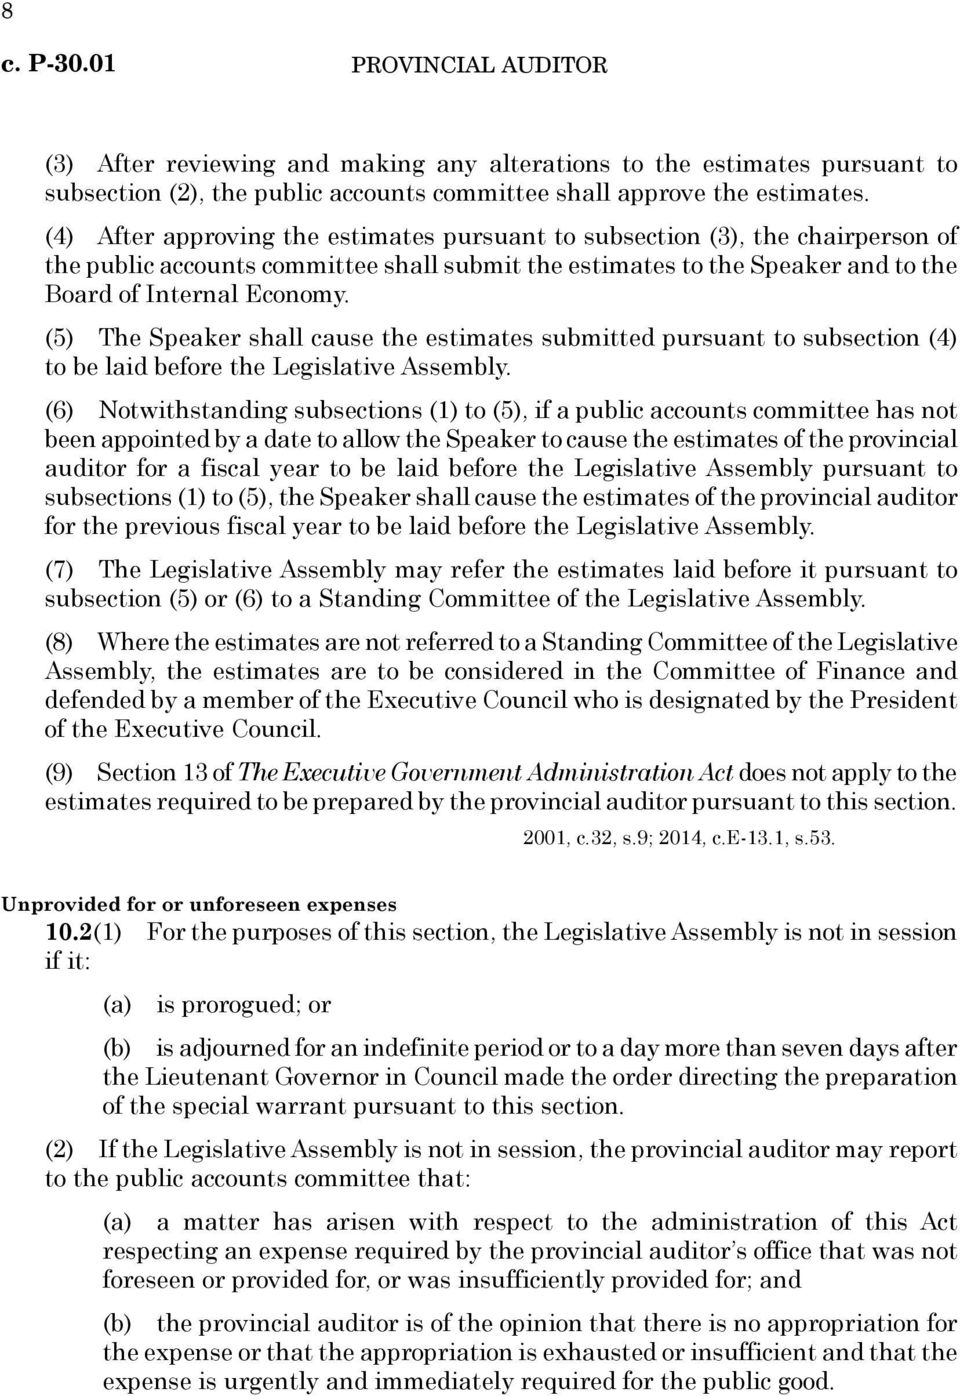 (5) The Speaker shall cause the estimates submitted pursuant to subsection (4) to be laid before the Legislative Assembly.